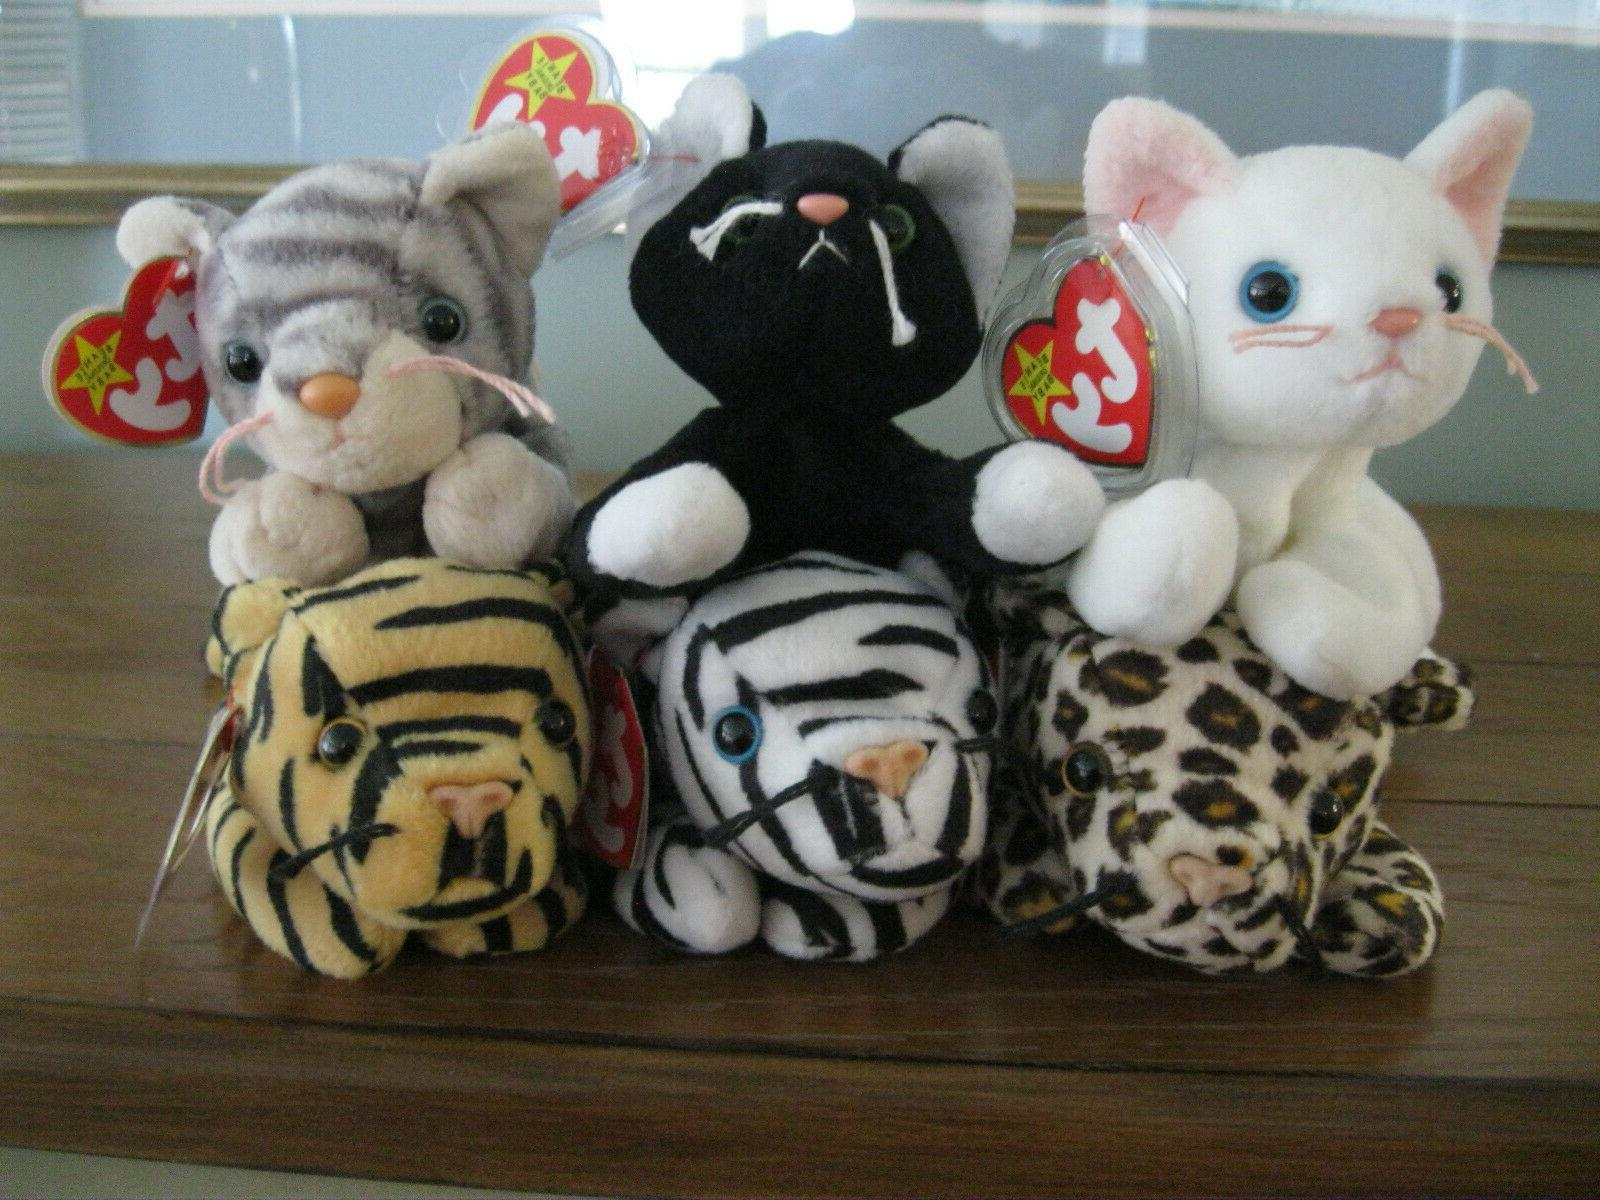 TY BEANIE BABIES CATS....6 TOTAL...MWMT STOCK...SMOKE